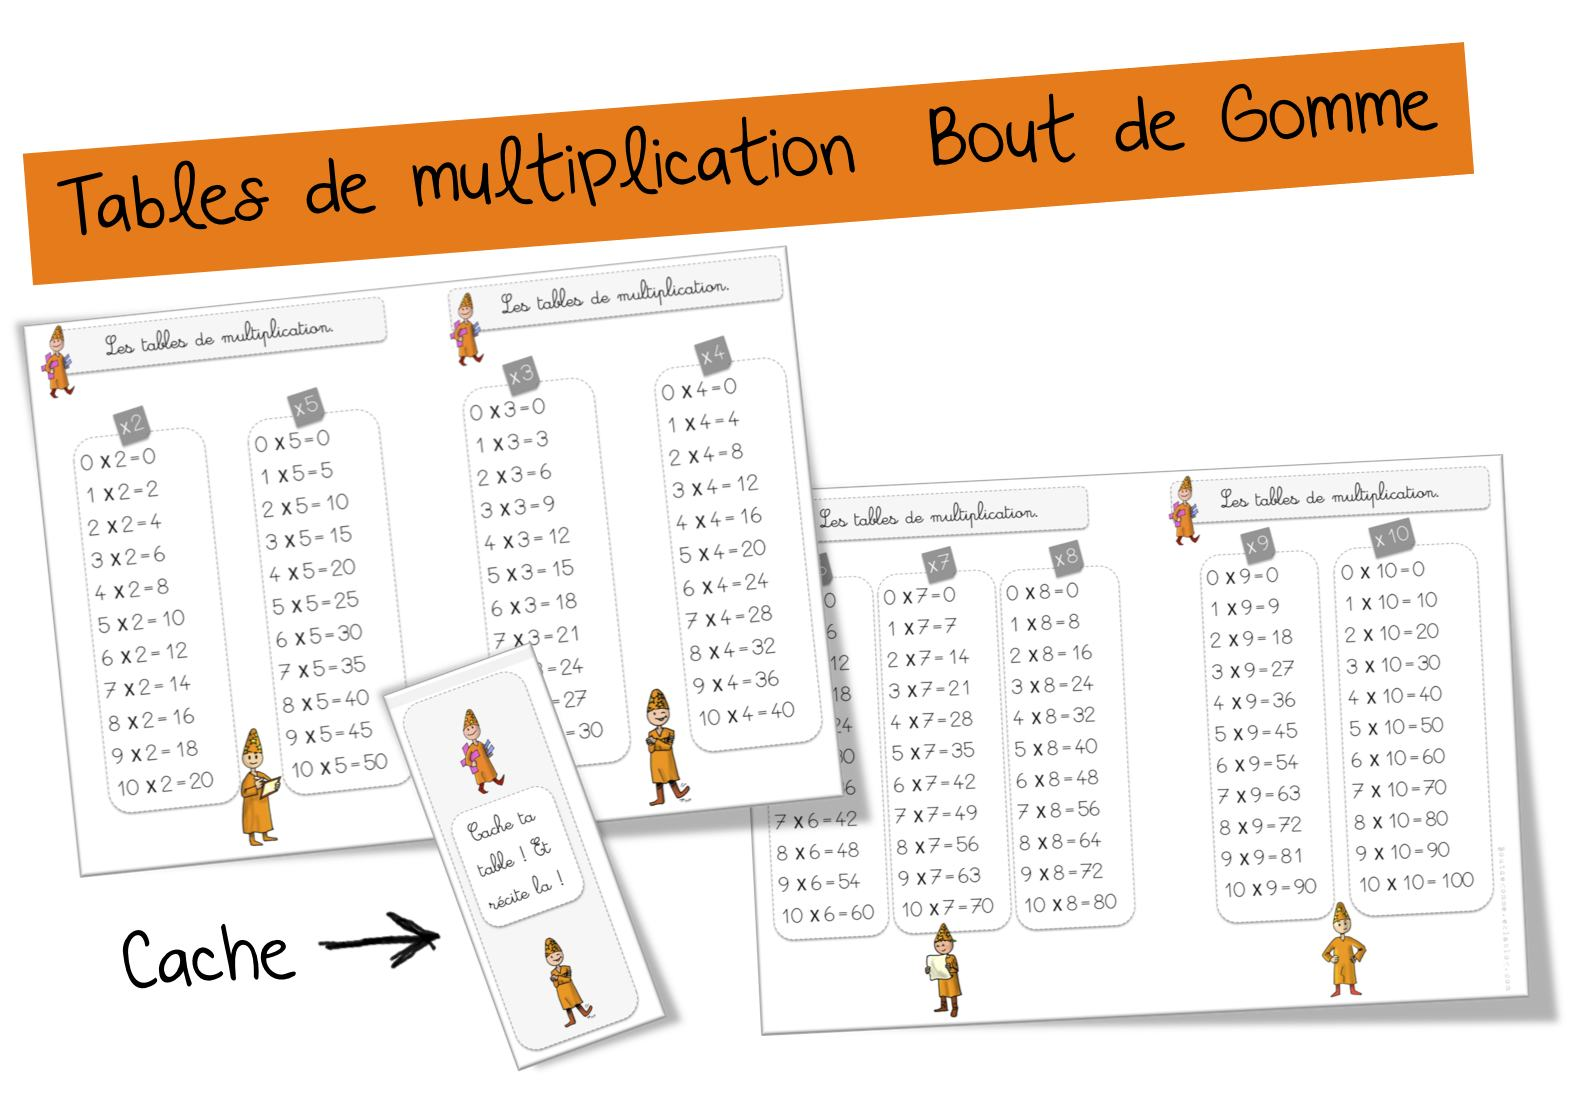 Tables de multiplication bout de gomme - Table de multiplication vierge a imprimer ...